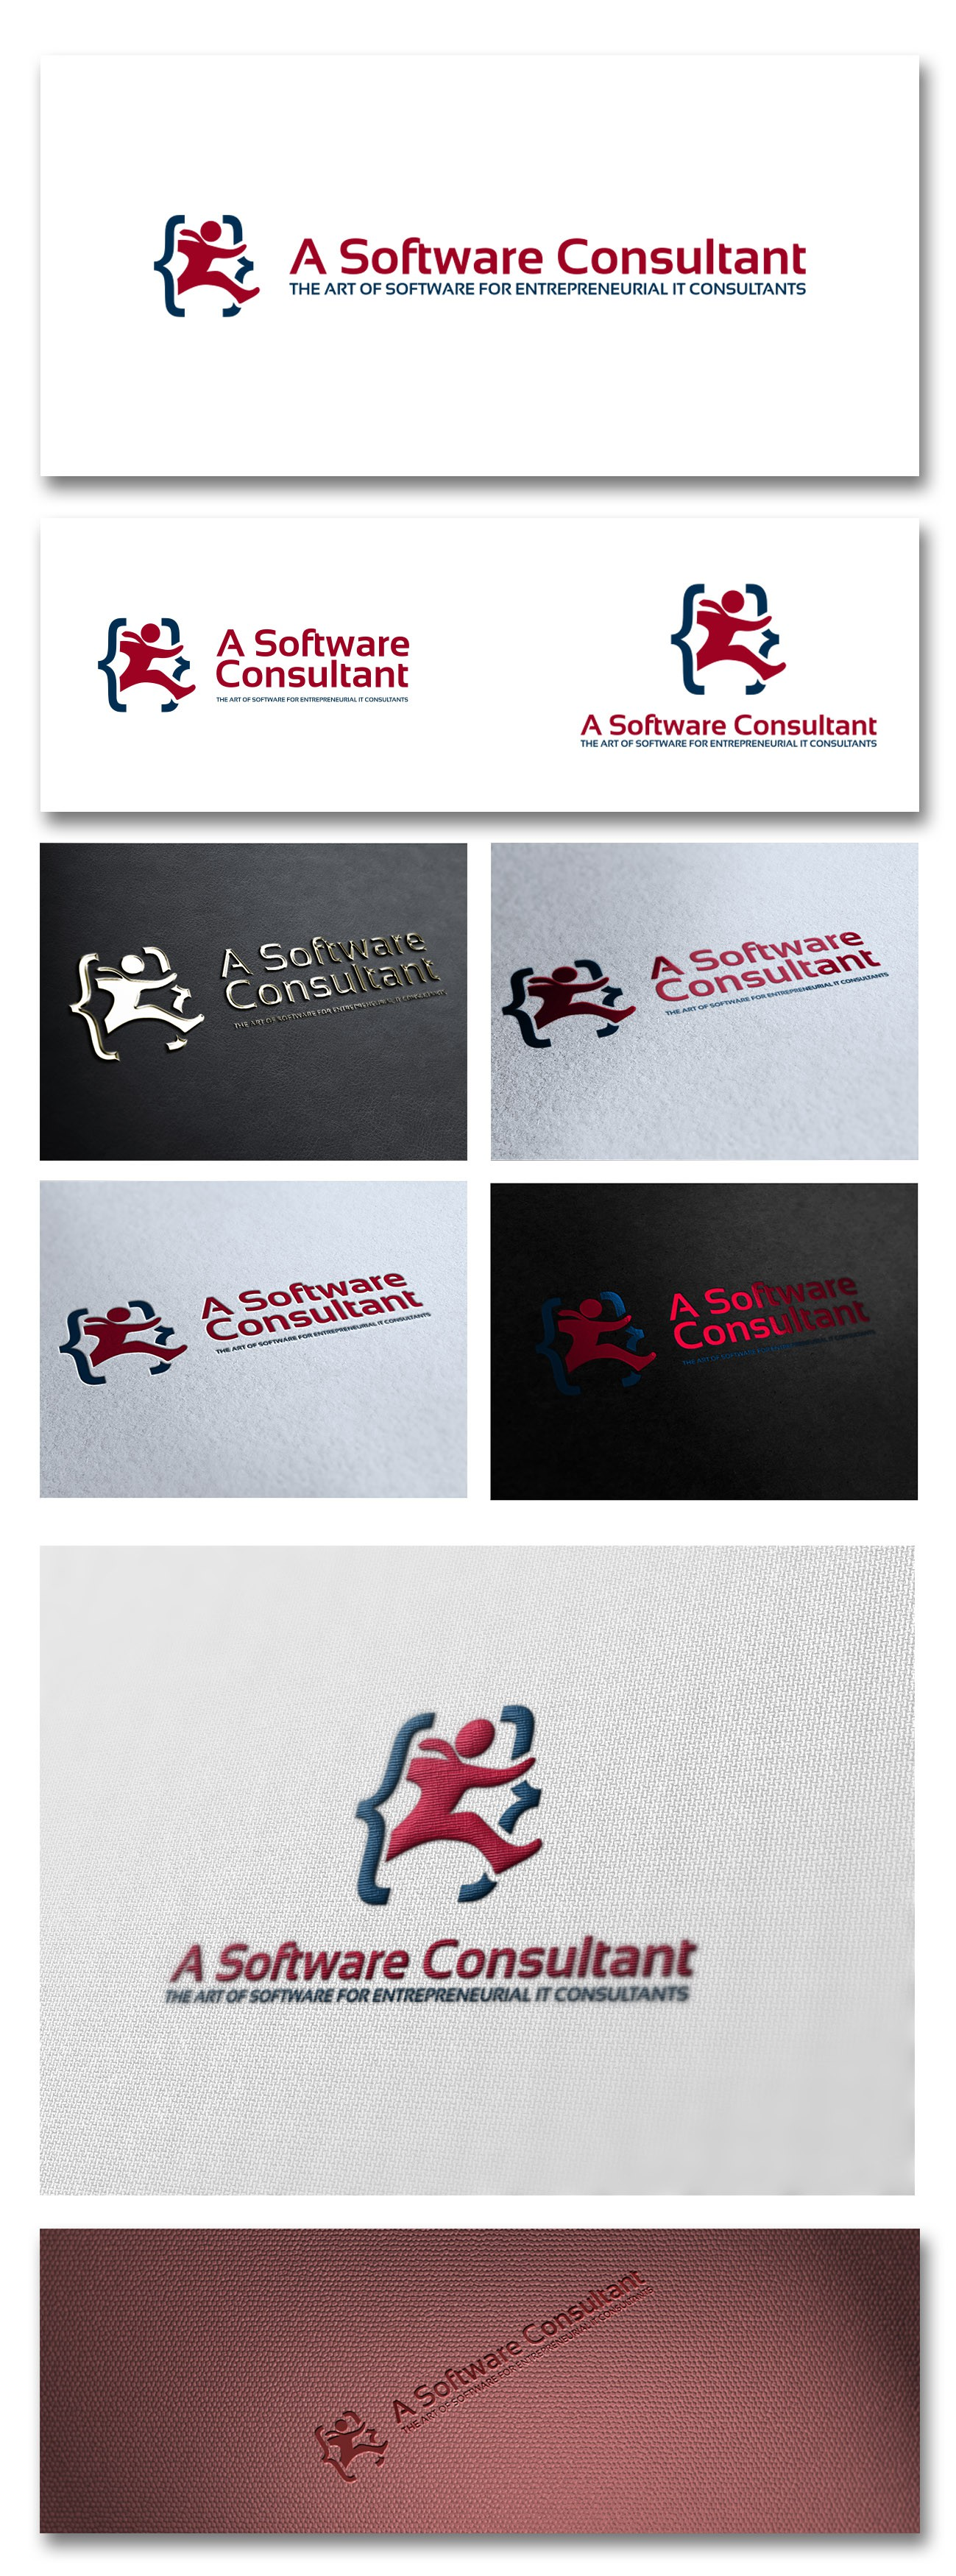 A Software Consultant Lives! Design my logo and get credits from my site!